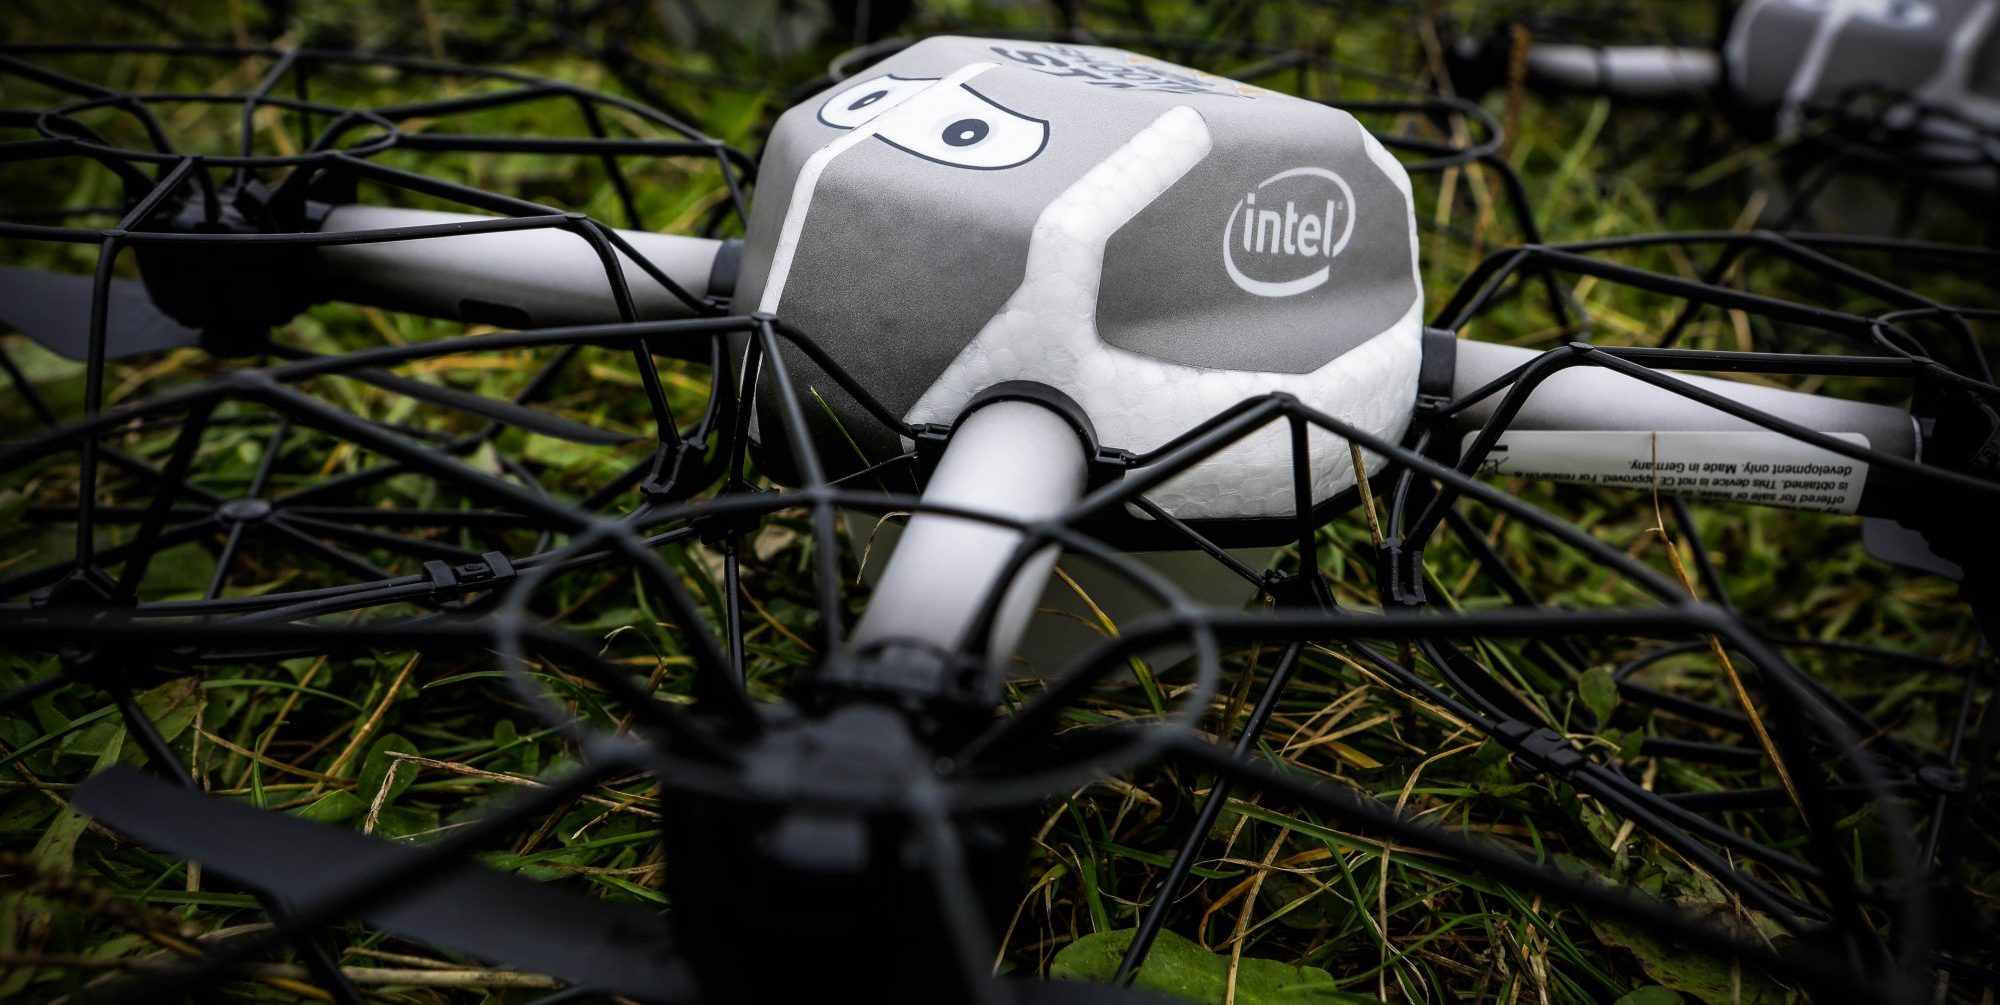 Intel Flies 500 Drones at Same Time for World Record